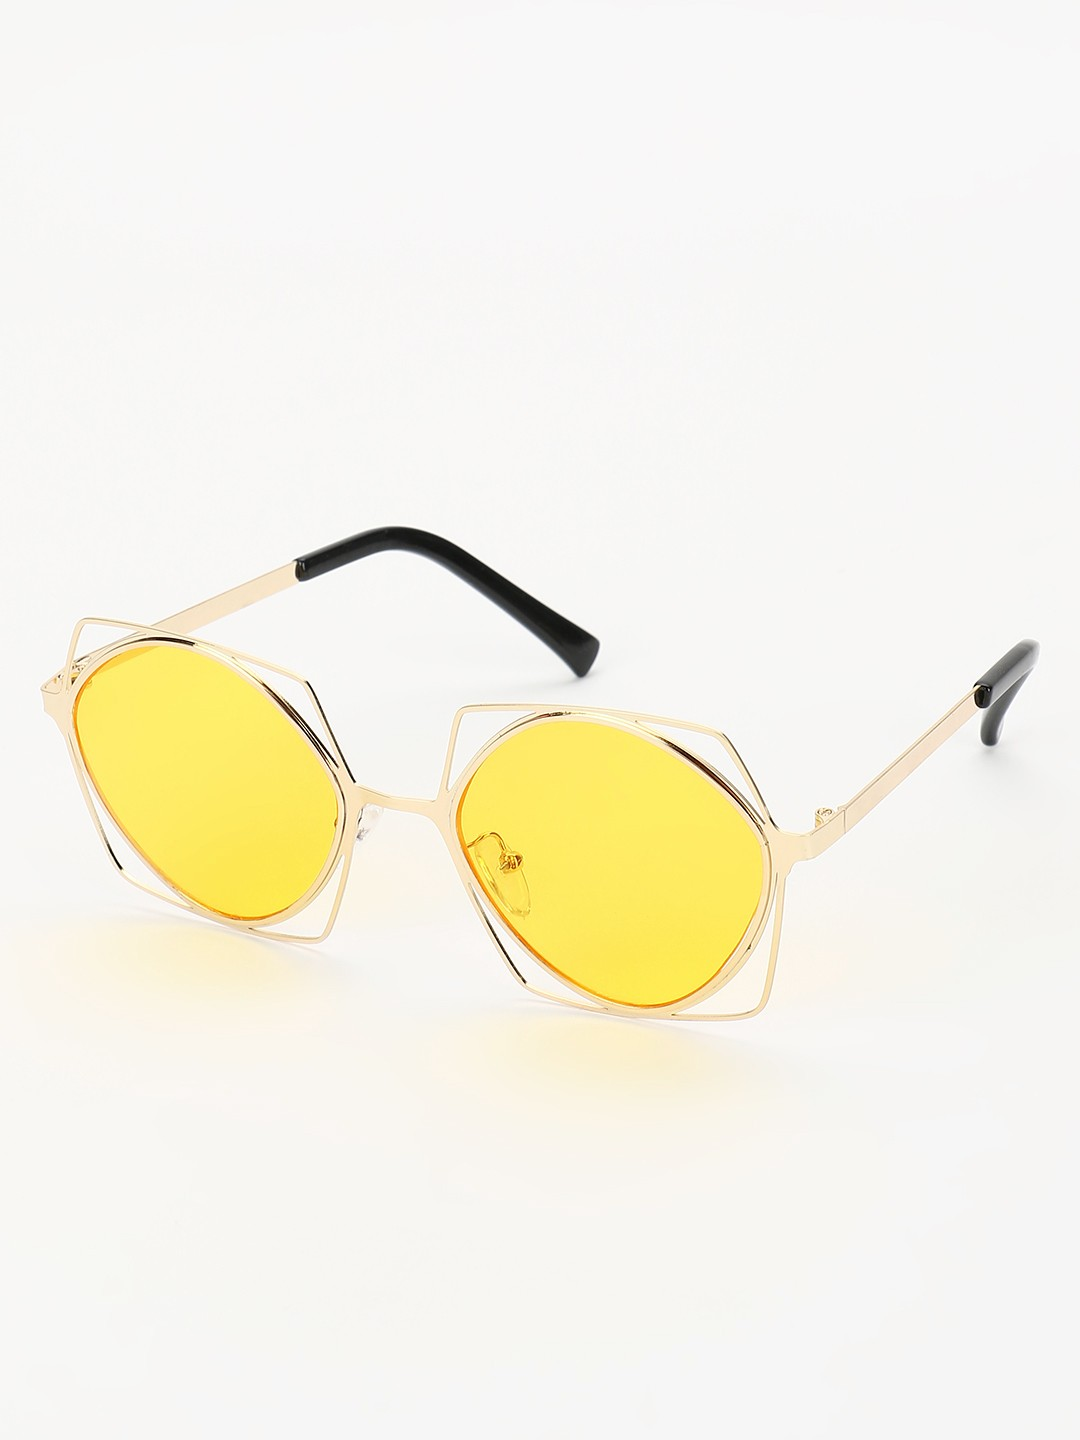 Sneak-a-Peek Yellow Coloured Lens Retro Sunglasses 1